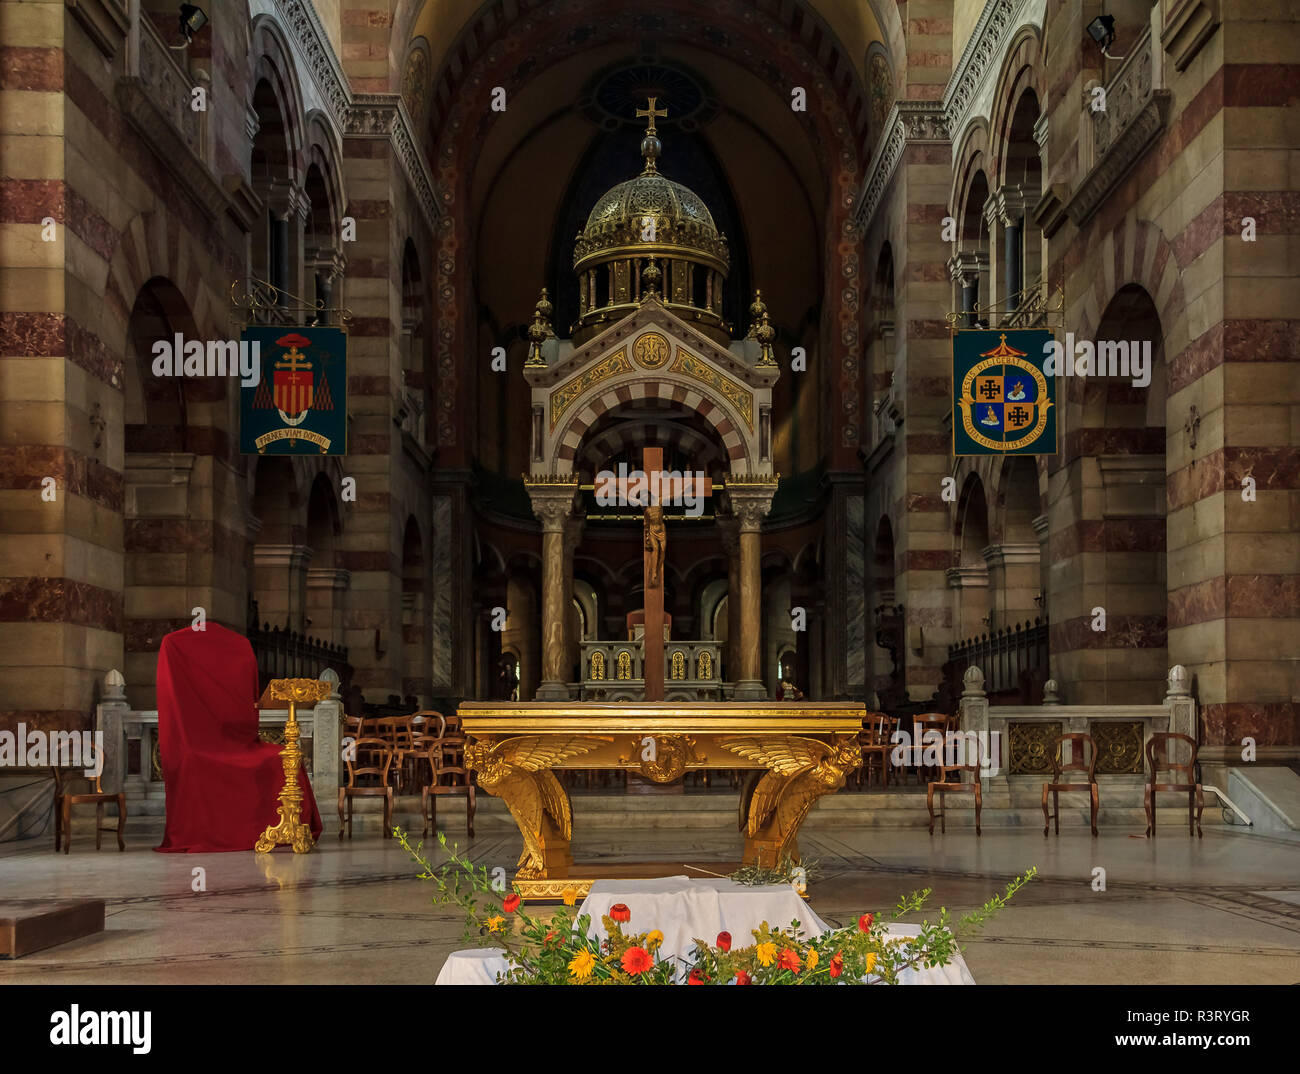 Guilded altar of the Cathedrale La Major or Marseille Cathedral, a Roman Catholic cathedra in Marseille, France - Stock Image